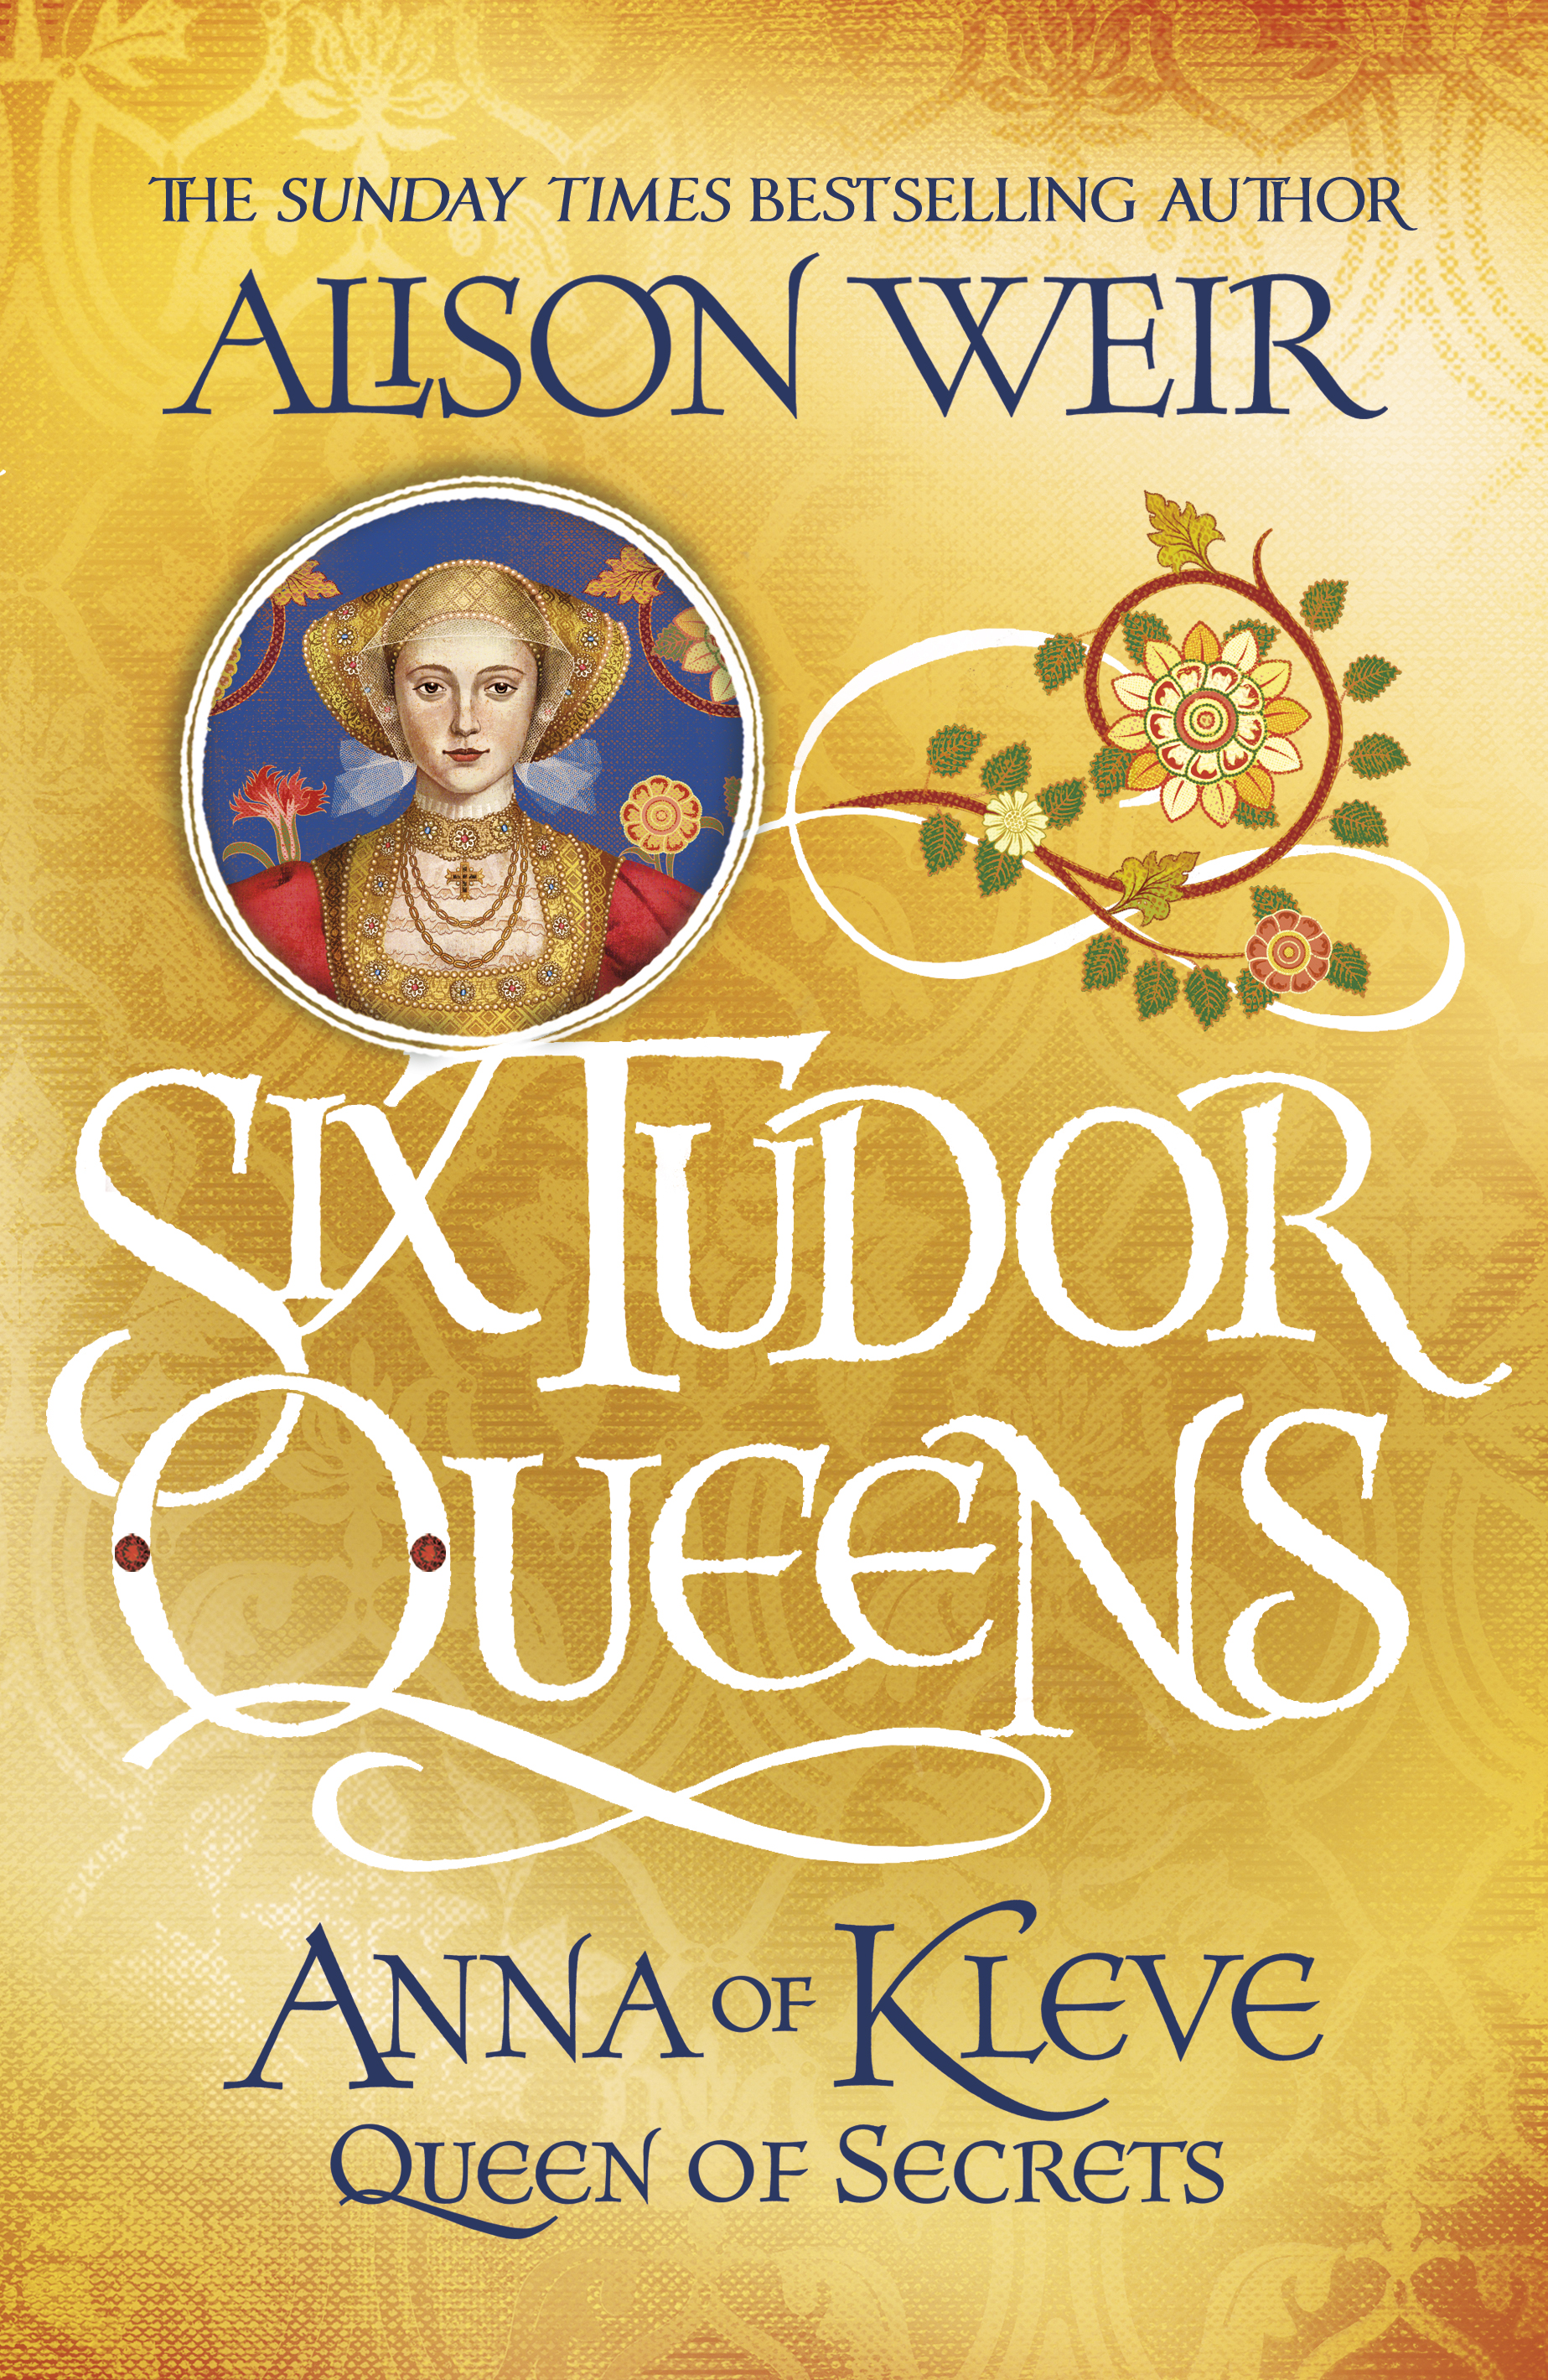 Tudor Queens with Alison Weir